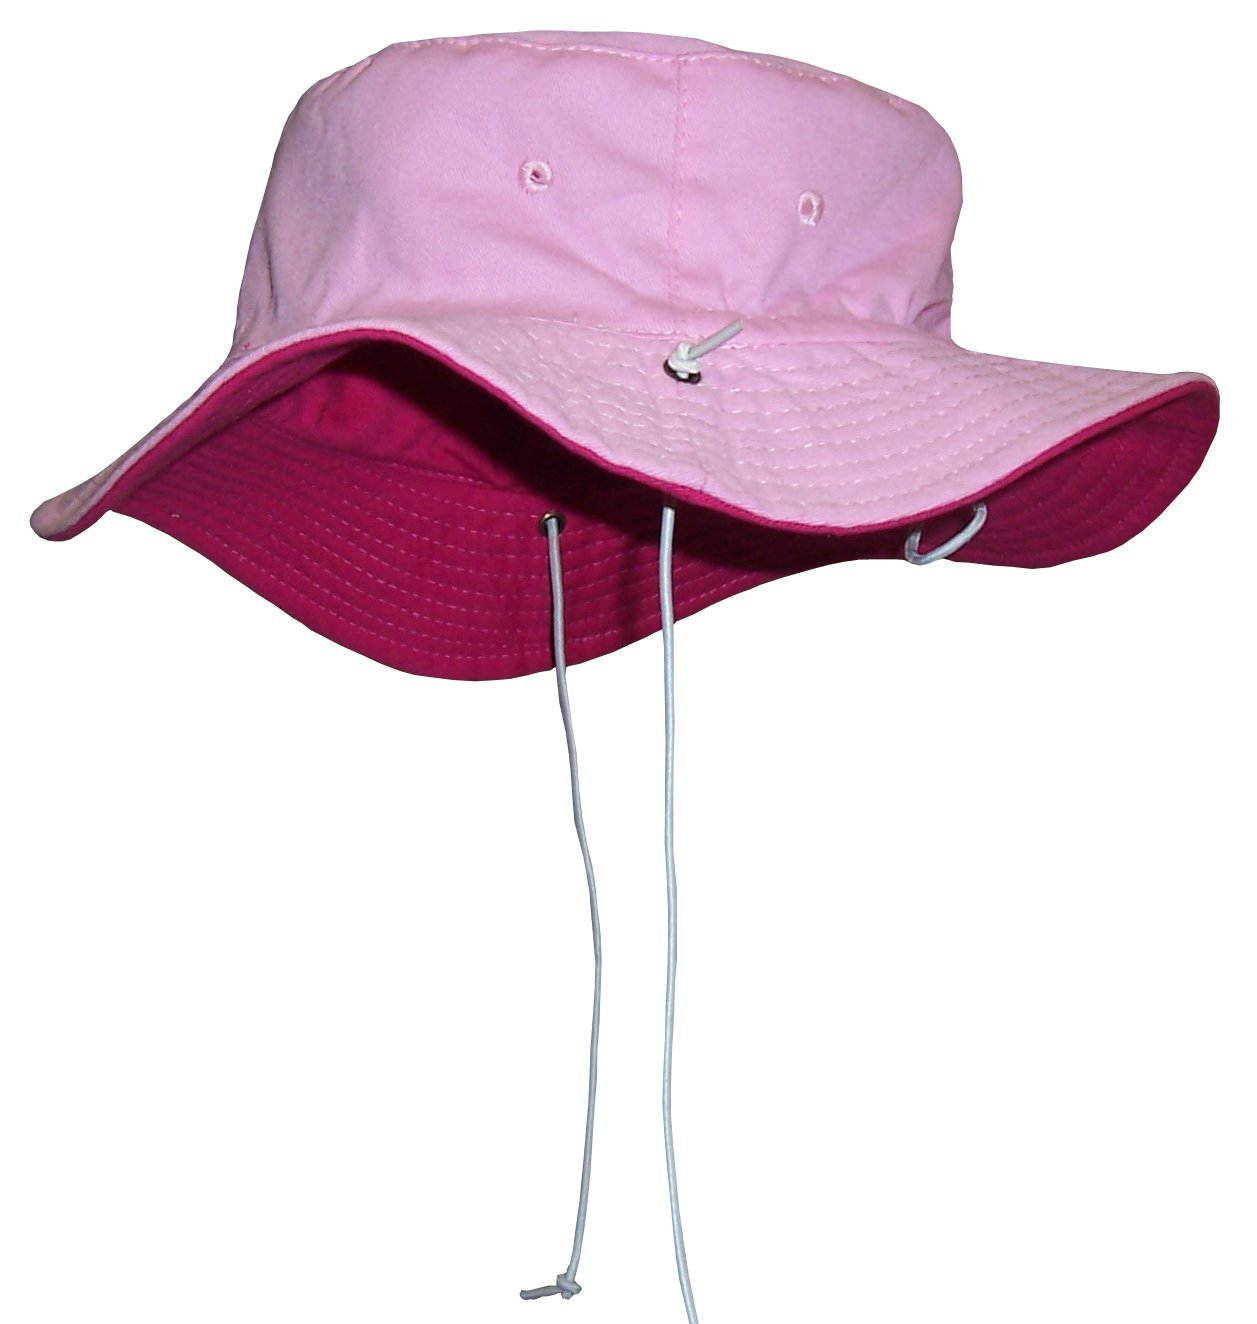 N'Ice Caps Baby Unisex Reversible and Adjustable Cotton Twill Aussie Sun Hat (52cm (20.5'') 18-36mos, Fuchsia/Pink)